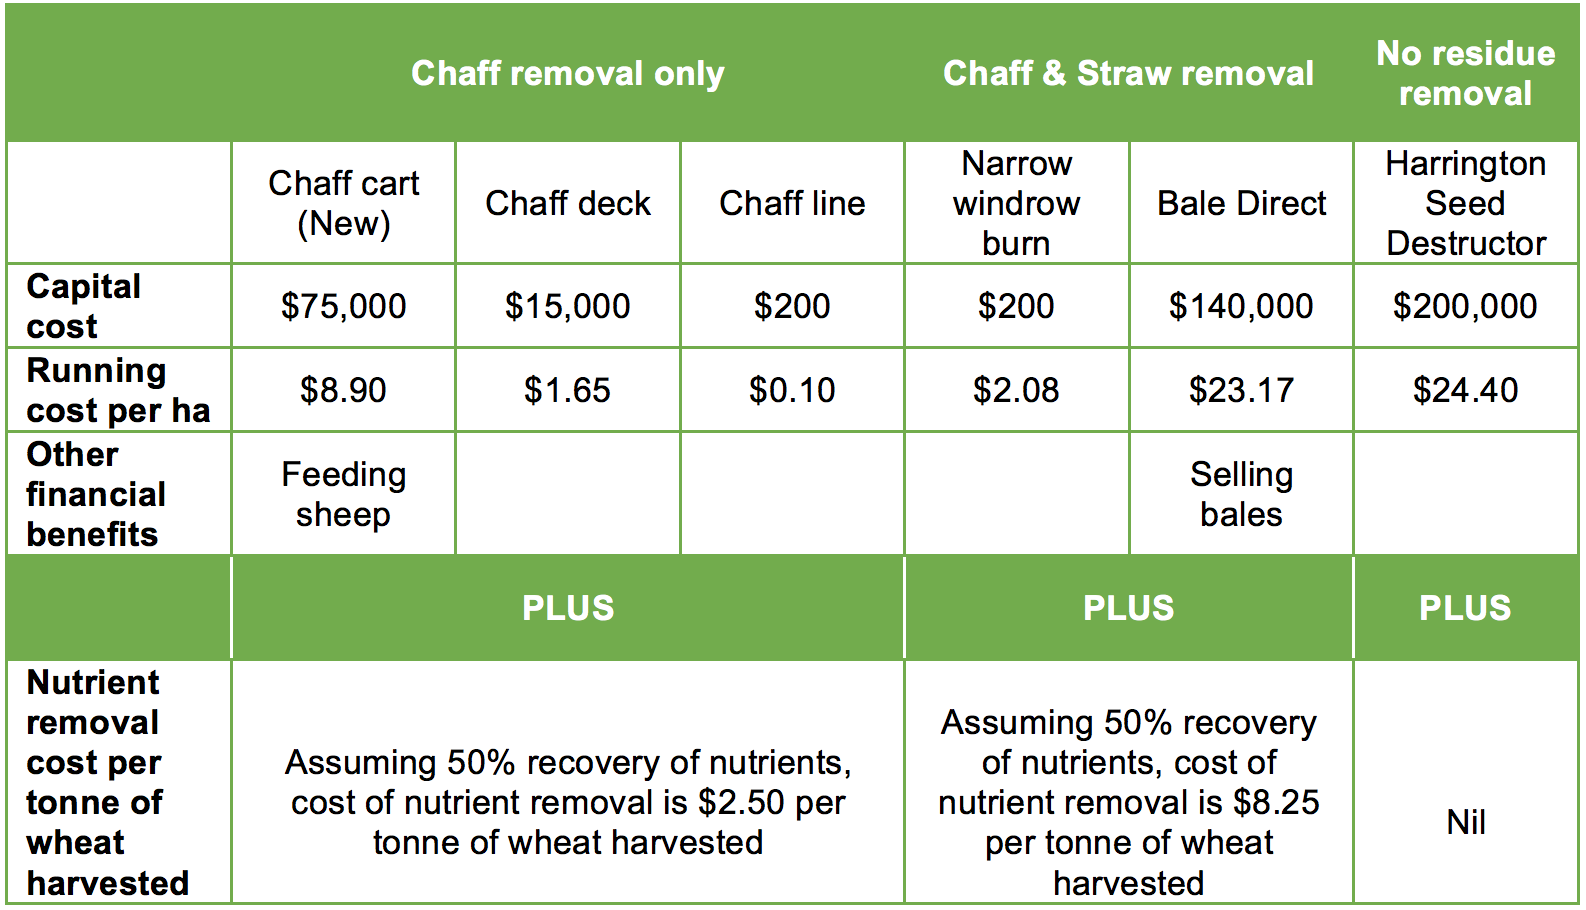 Table 3. Nutrient removal per tonne